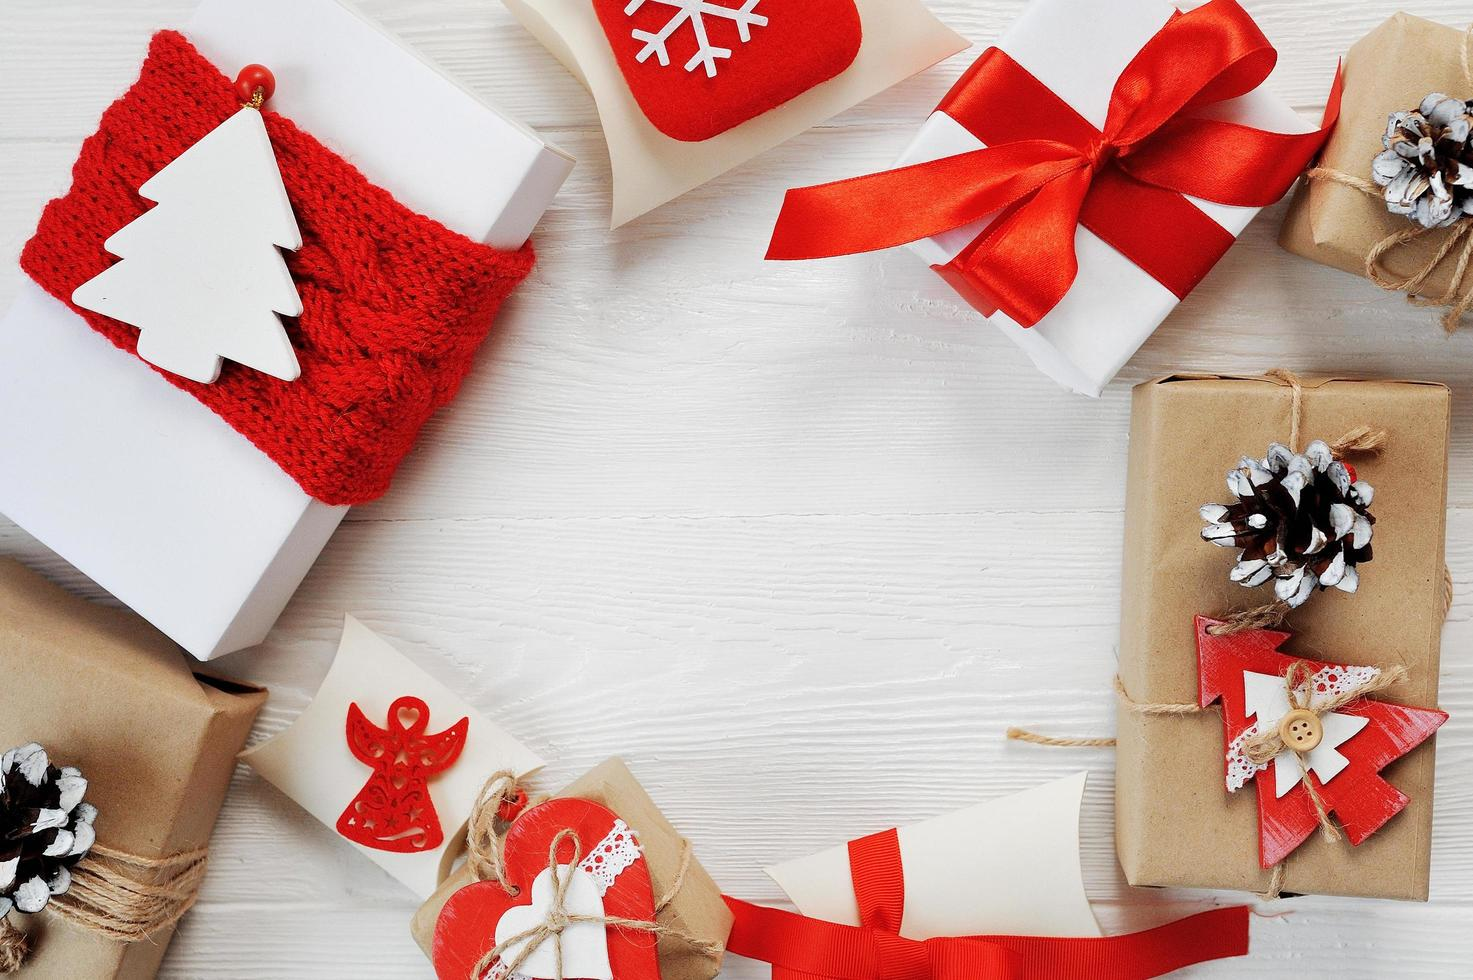 Christmas boxes decorated with red bows  photo